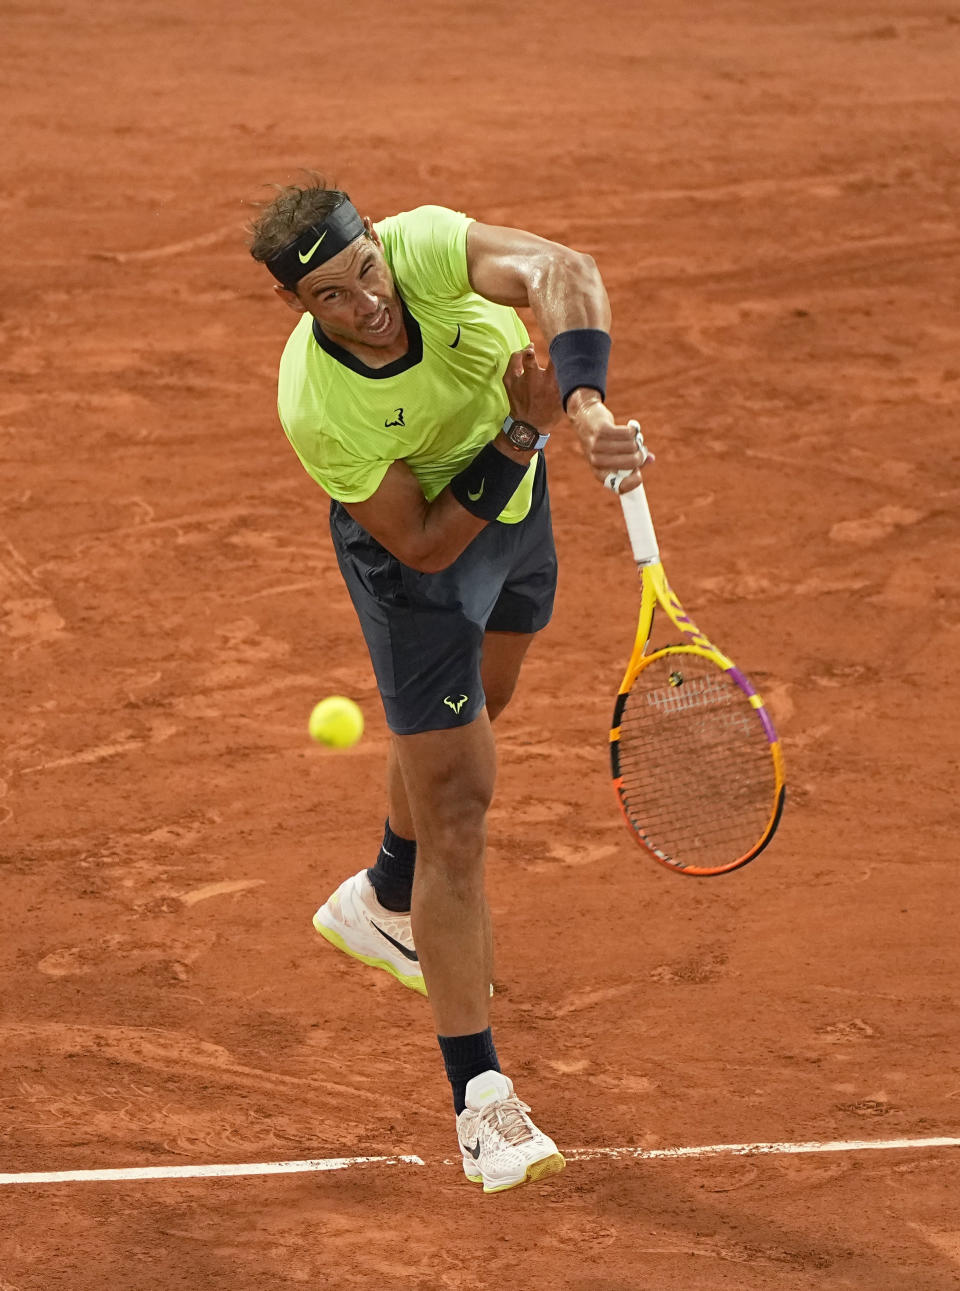 Spain's Rafael Nadal serves to Richard Gasquet of France during their second round match on day 5, of the French Open tennis tournament at Roland Garros in Paris, France, Thursday, June 3, 2021. (AP Photo/Michel Euler)